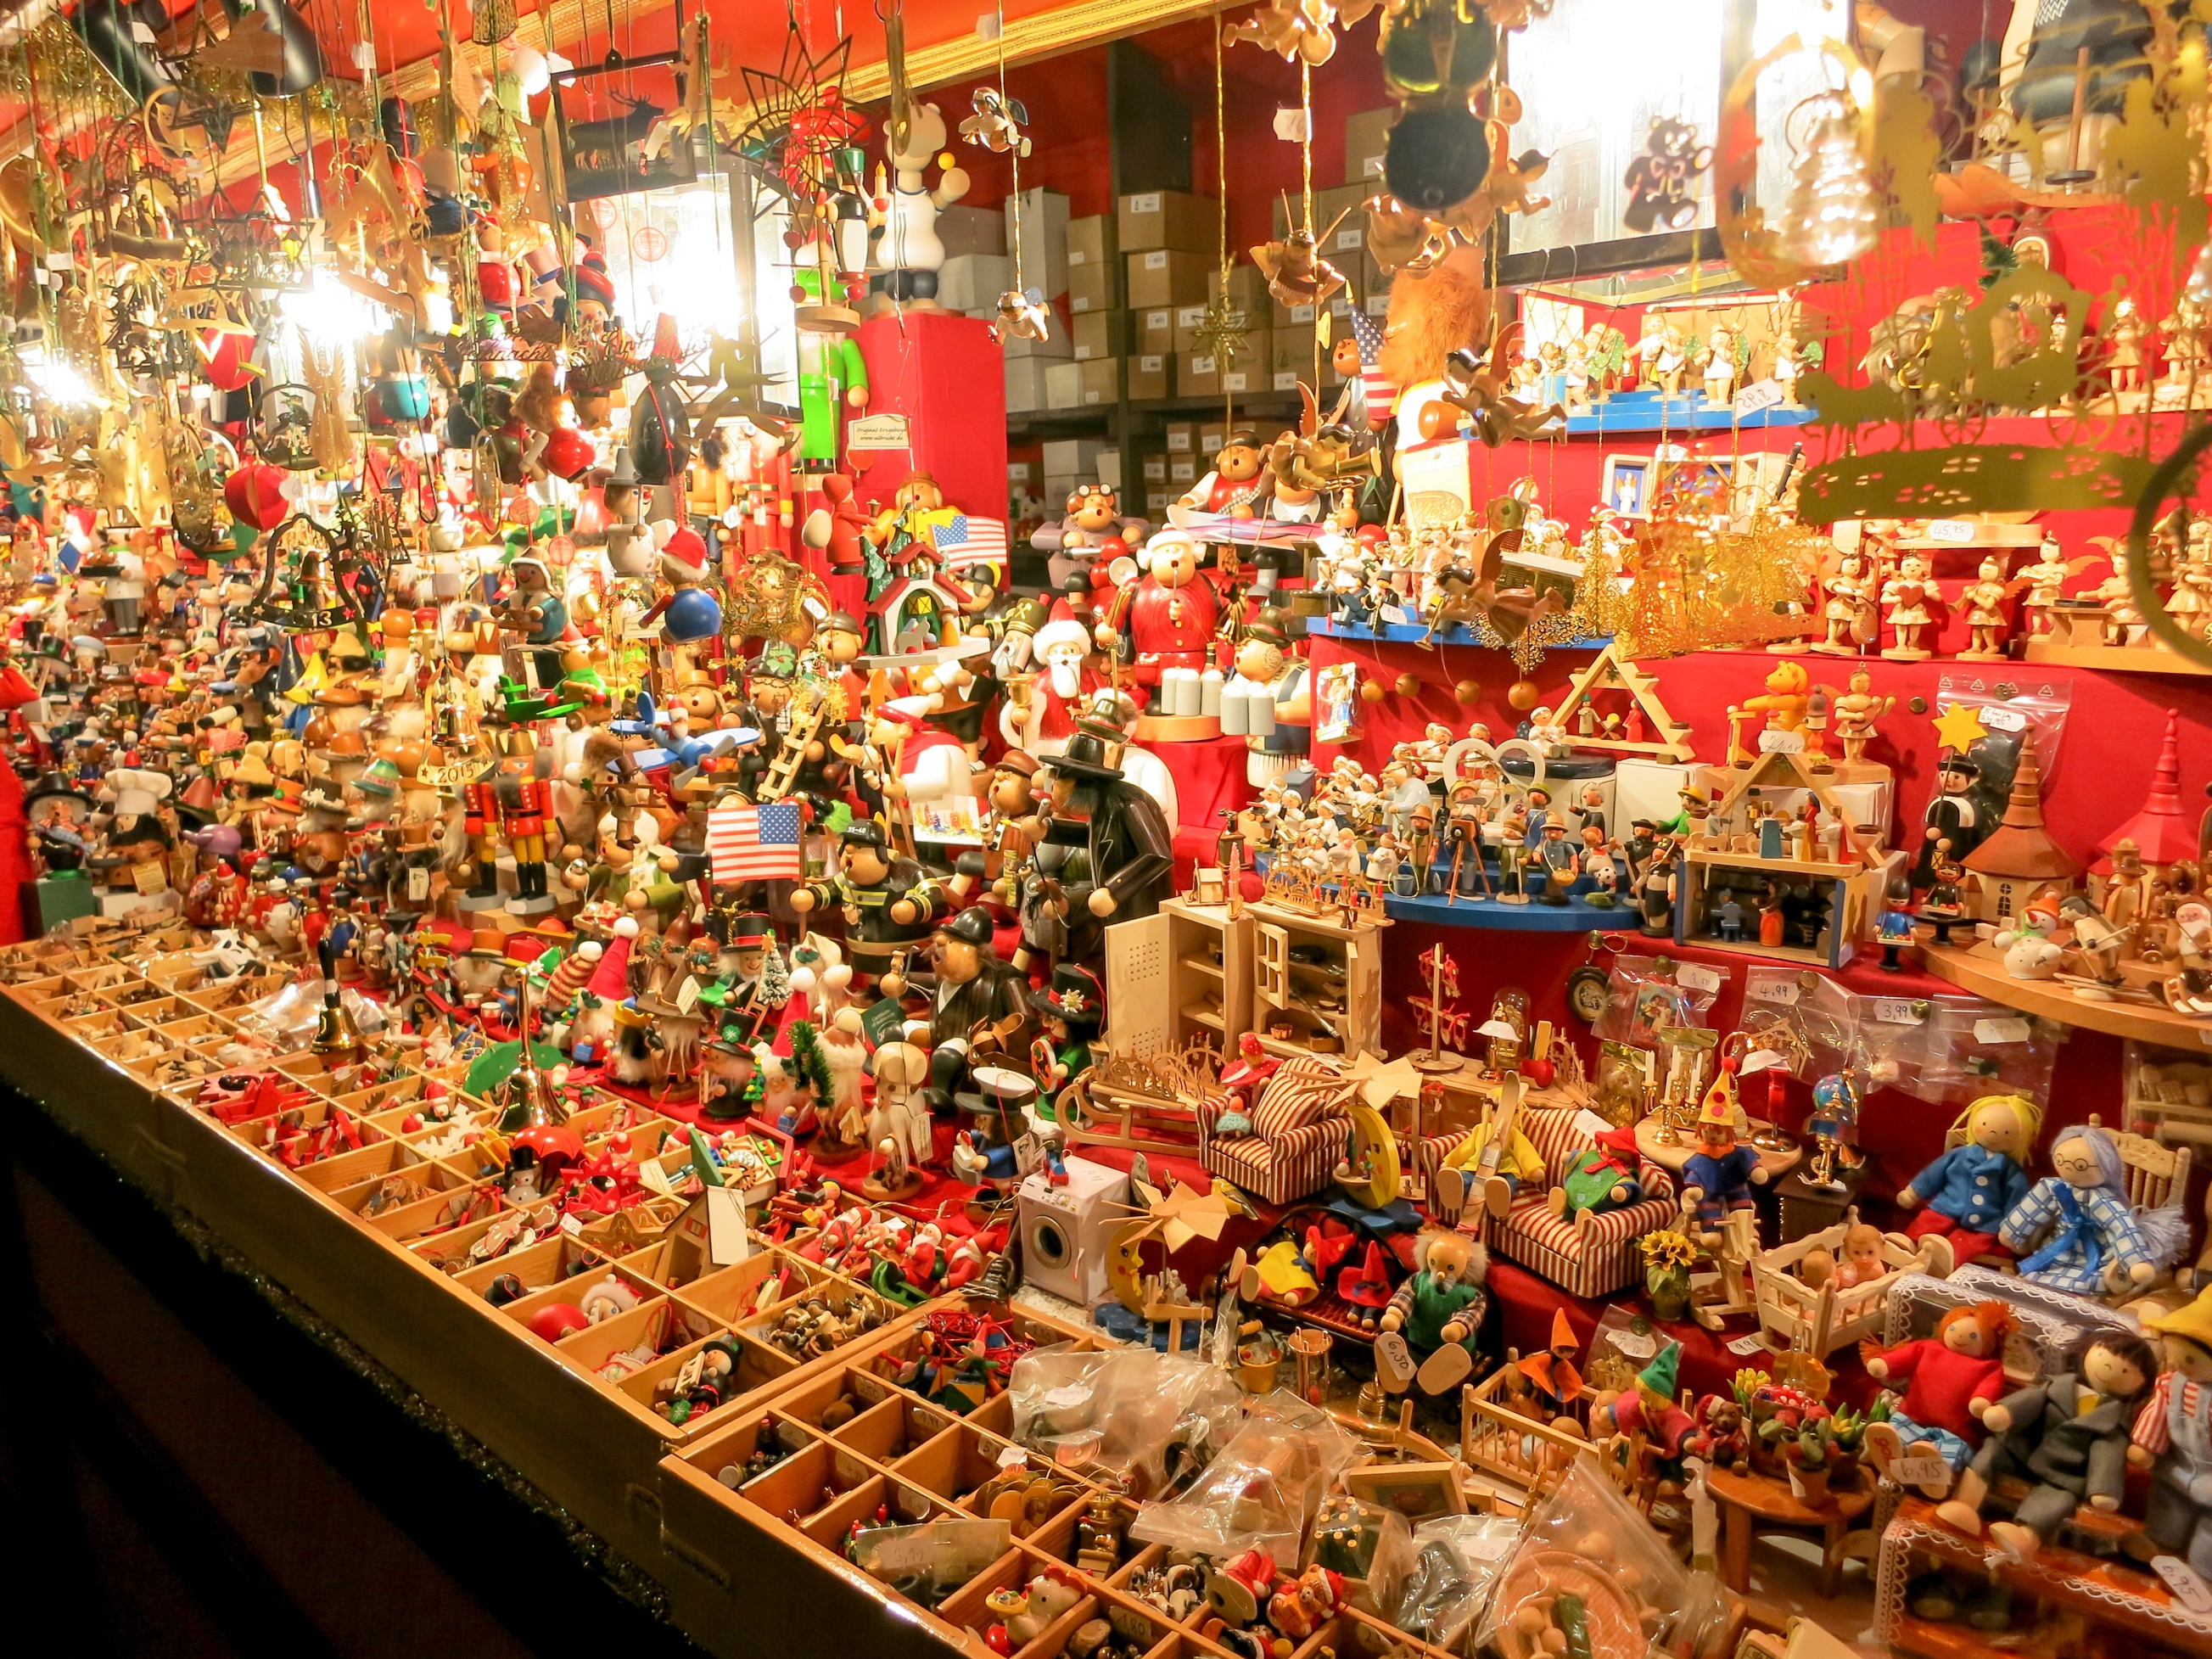 Germany_ChristmasMarkets_Sights_shutterstock_523664338-1